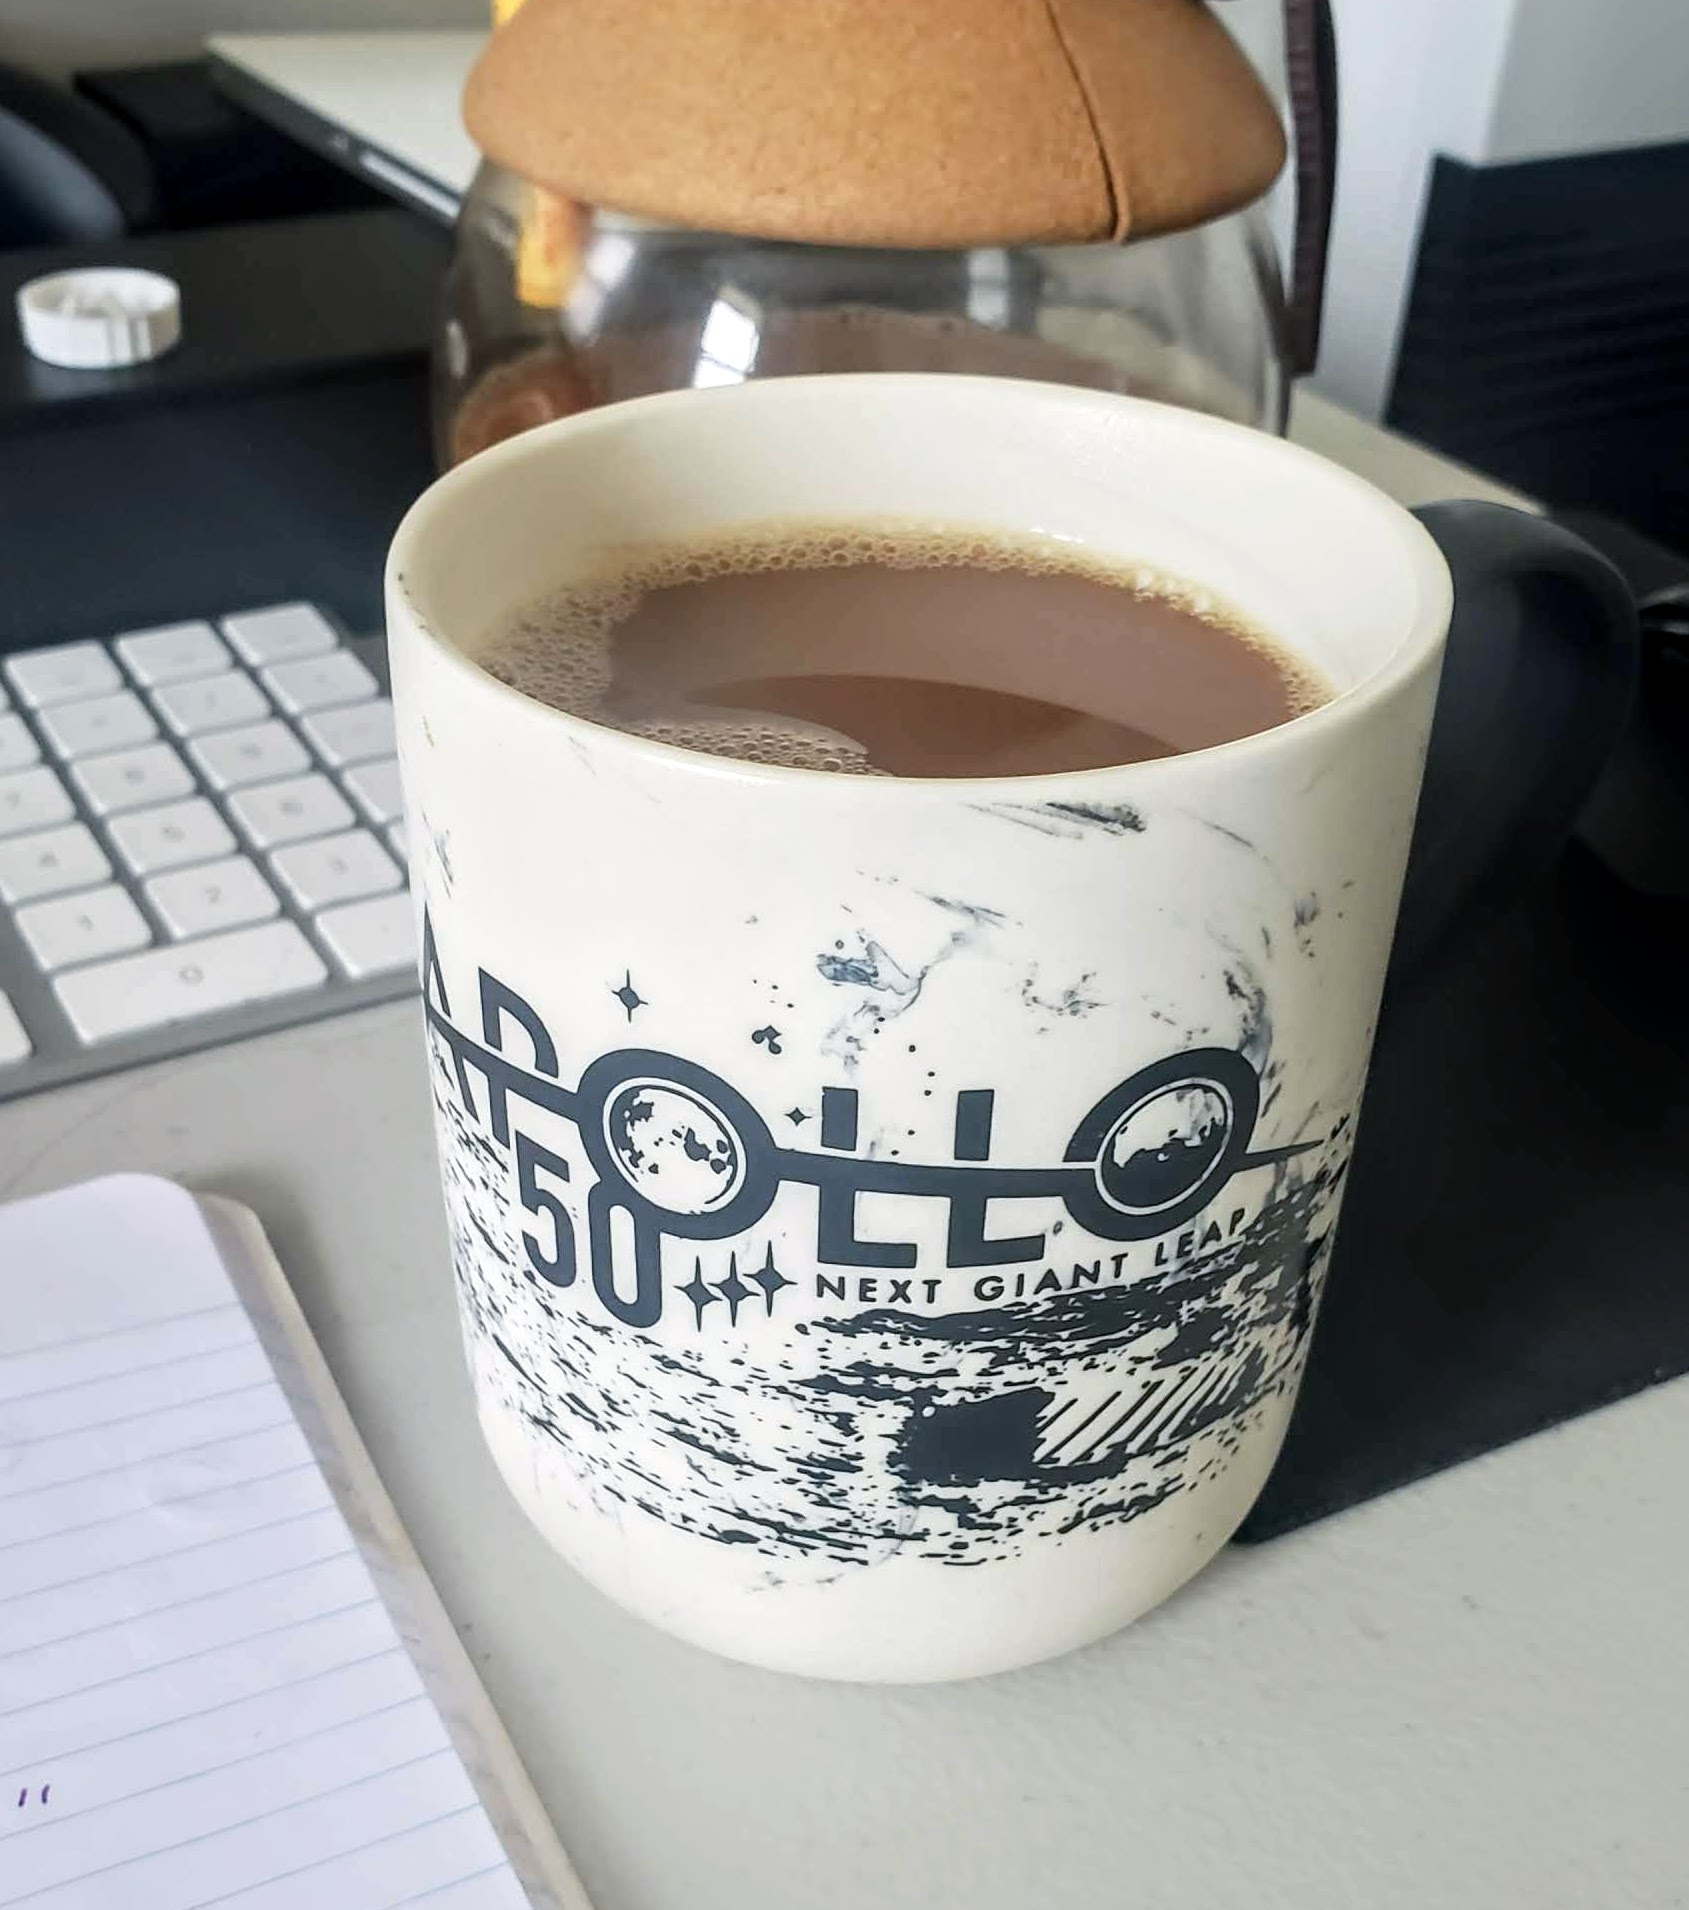 "Cup of coffee with cream, the color is a light brown. In a cup labeled ""Apollo 50th Anniversary."" Sitting on the author's home desk. Keyboard and coffee pot visible in the background."